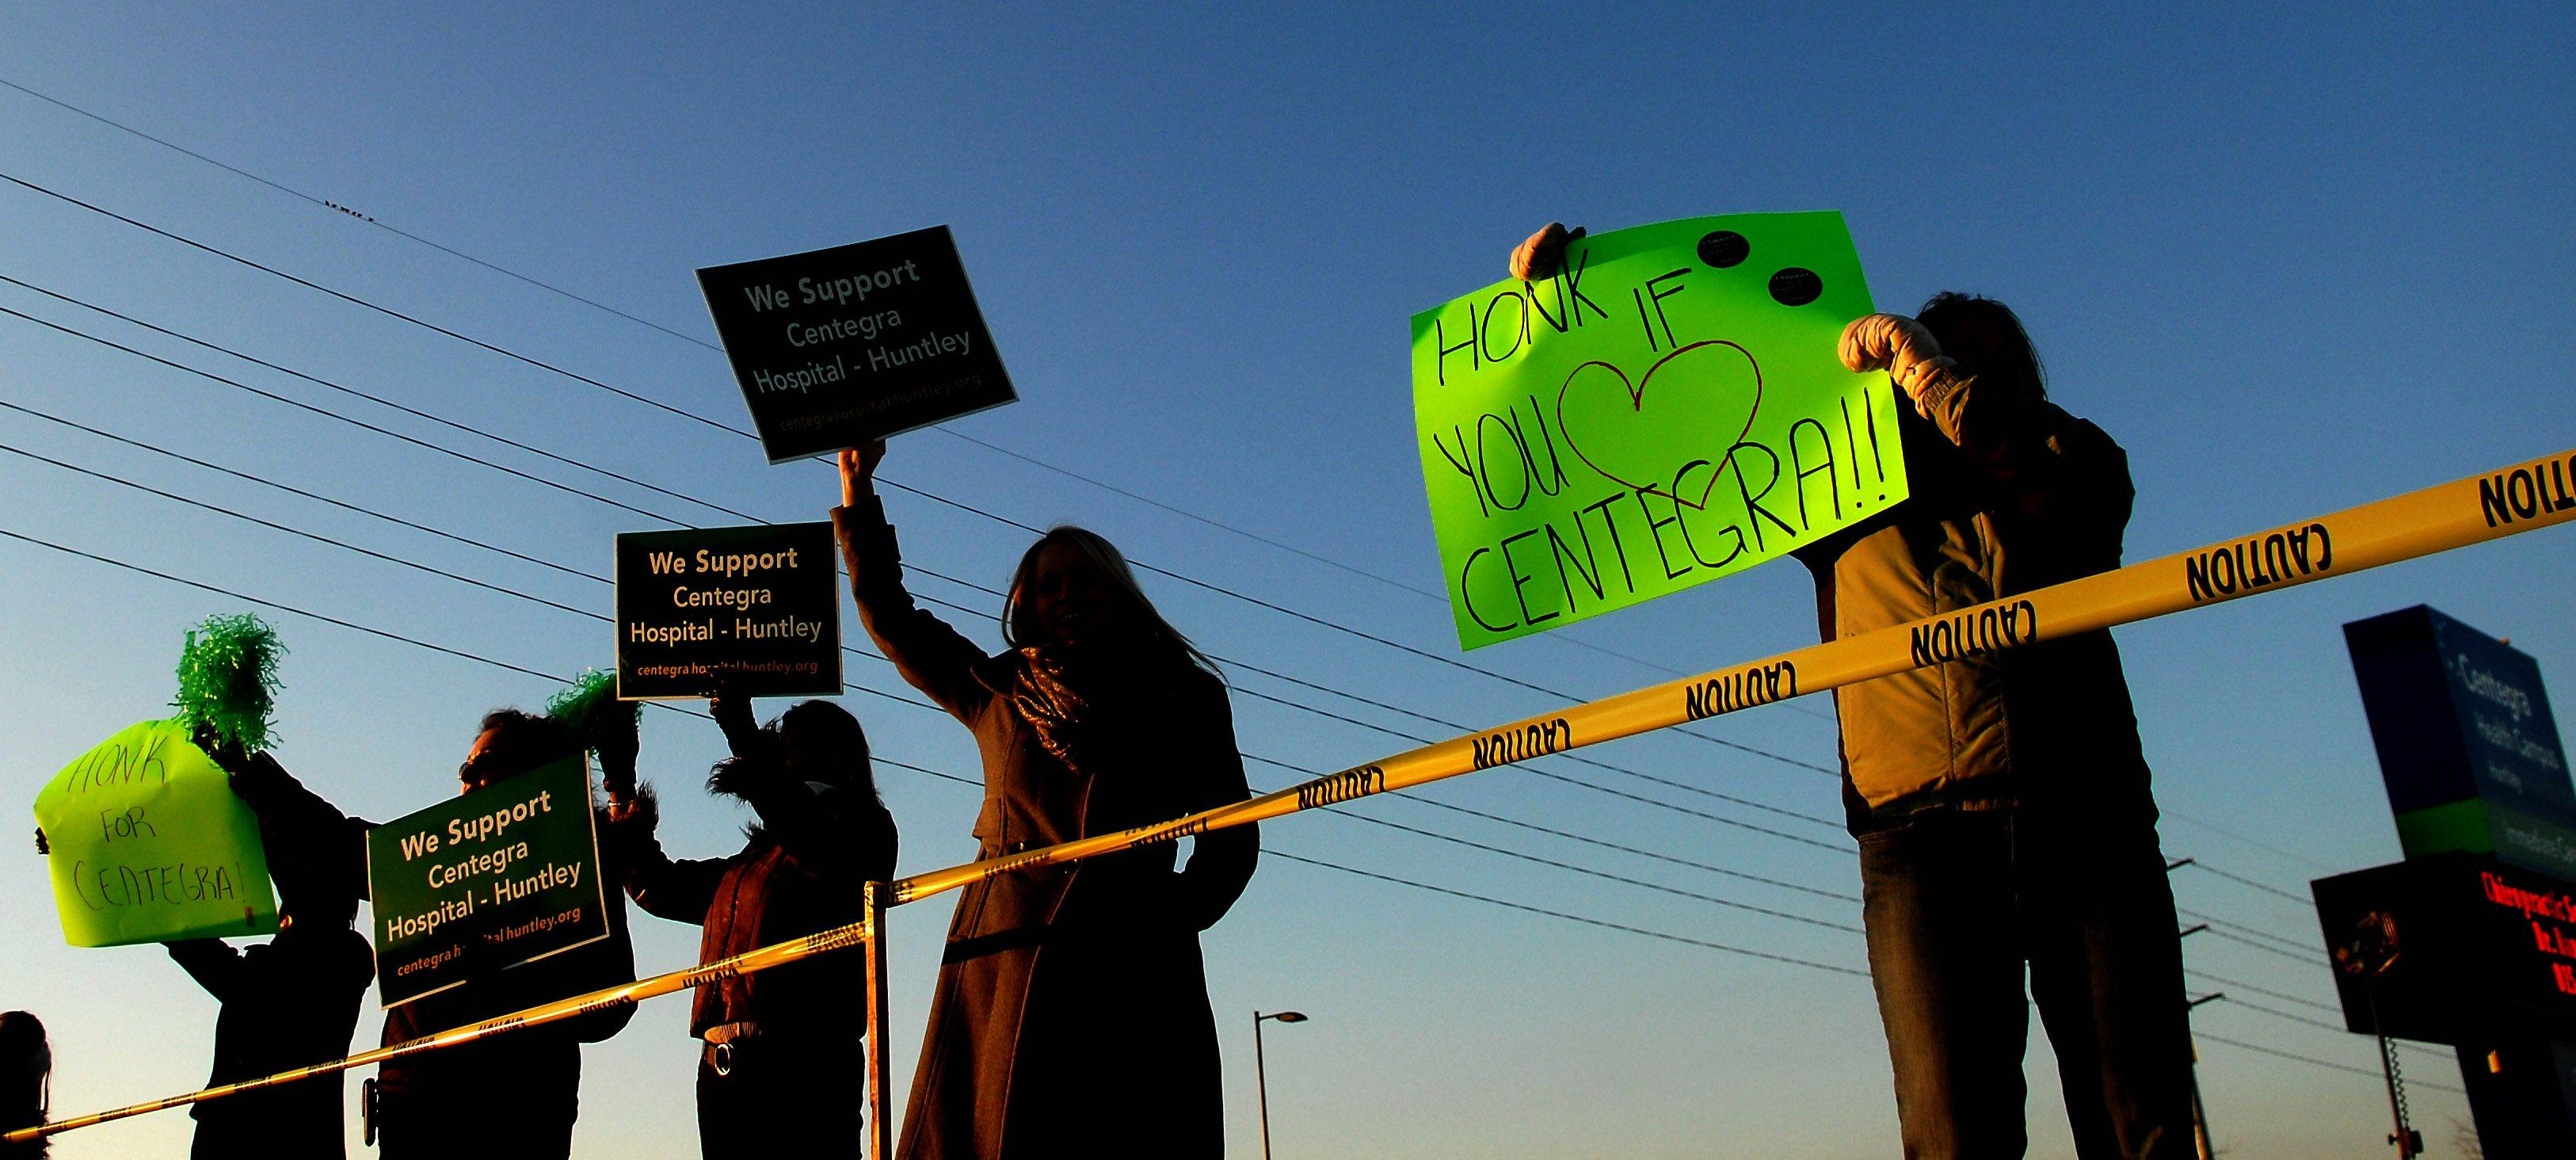 Supporters rally for a new Centegra hospital in Huntley earlier this year.